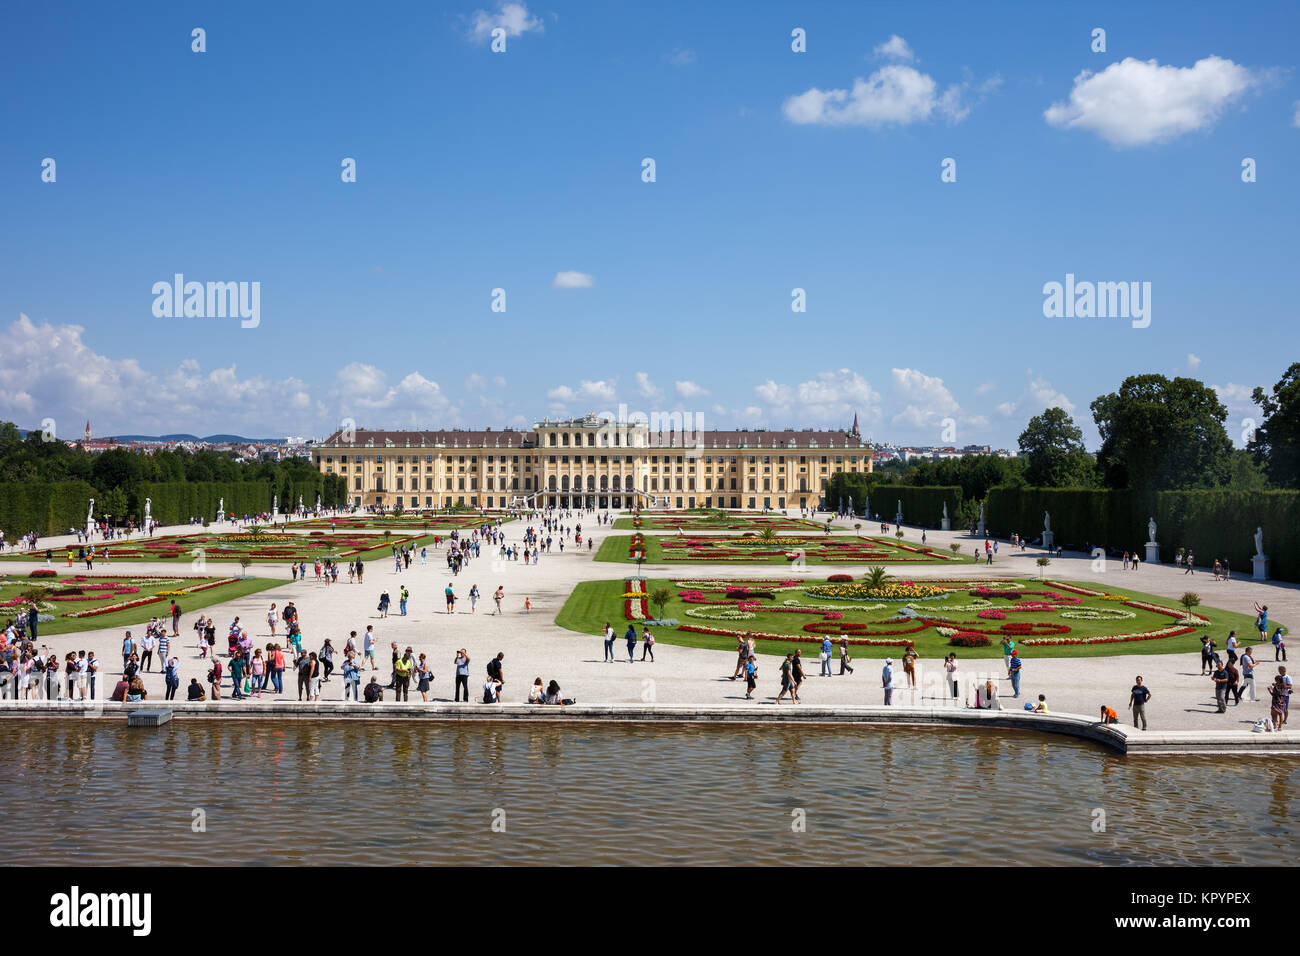 Schonbrunn Palace, imperial summer Baroque residence and garden, city of Vienna, Austria, Europe Stock Photo